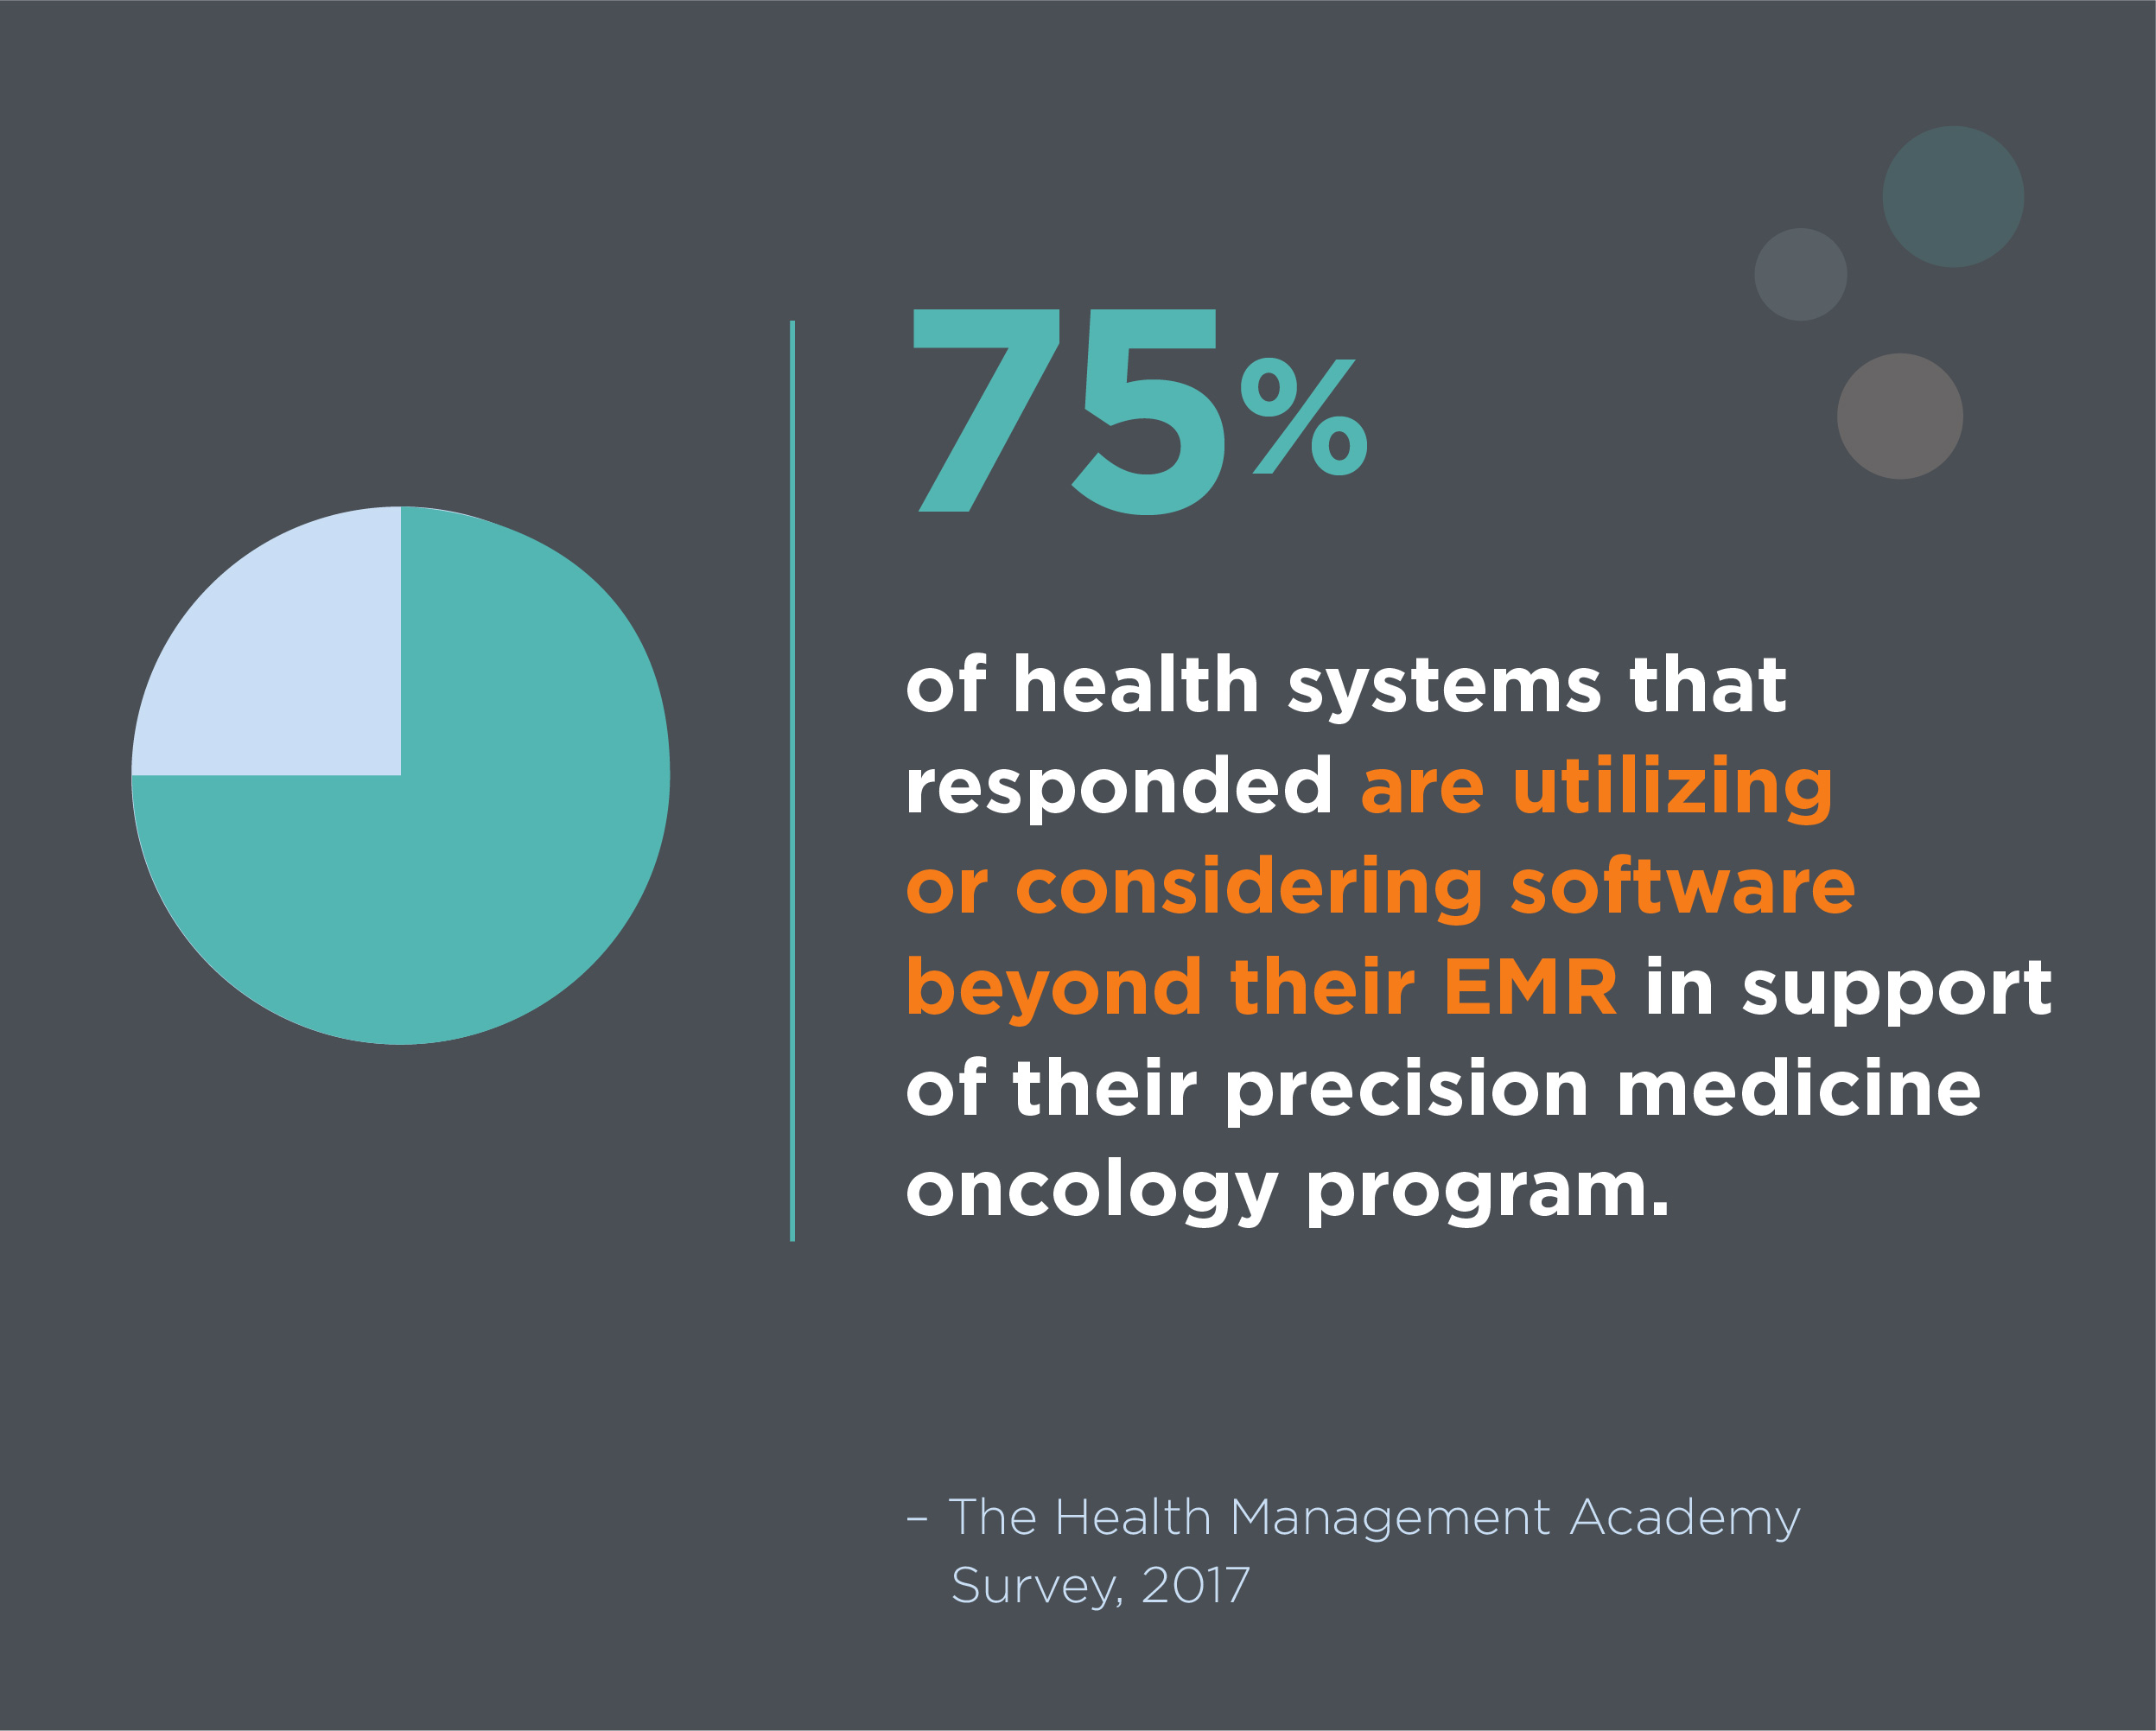 Software and technology solutions will play a critical role in realizing the full potential of precision medicine in cancer care.